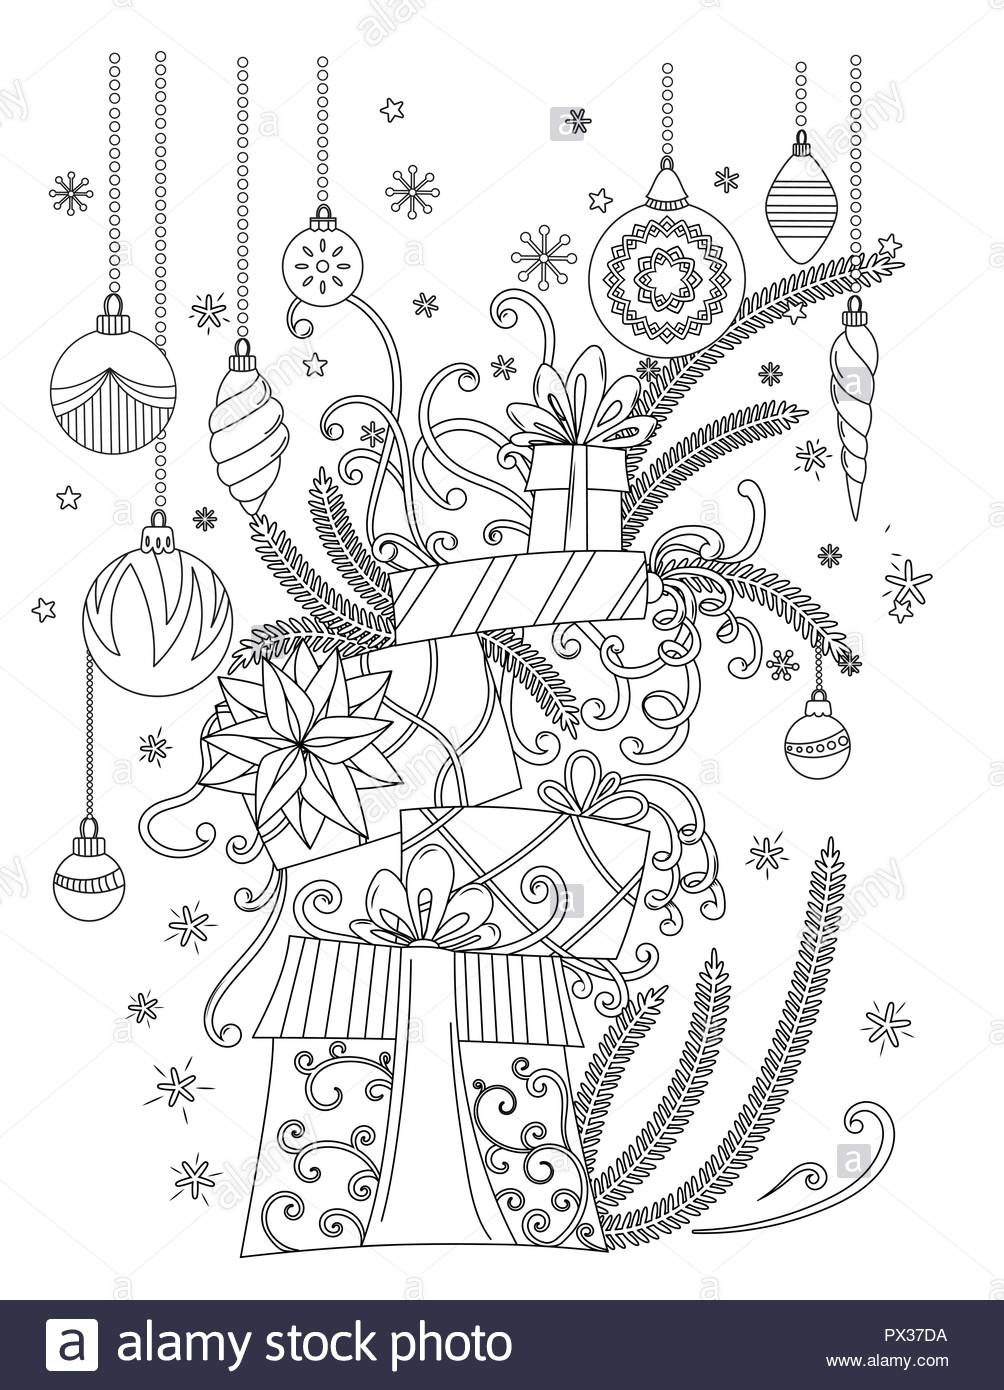 Christmas Coloring Pages Vector With Book For Adults Pile Of Holiday